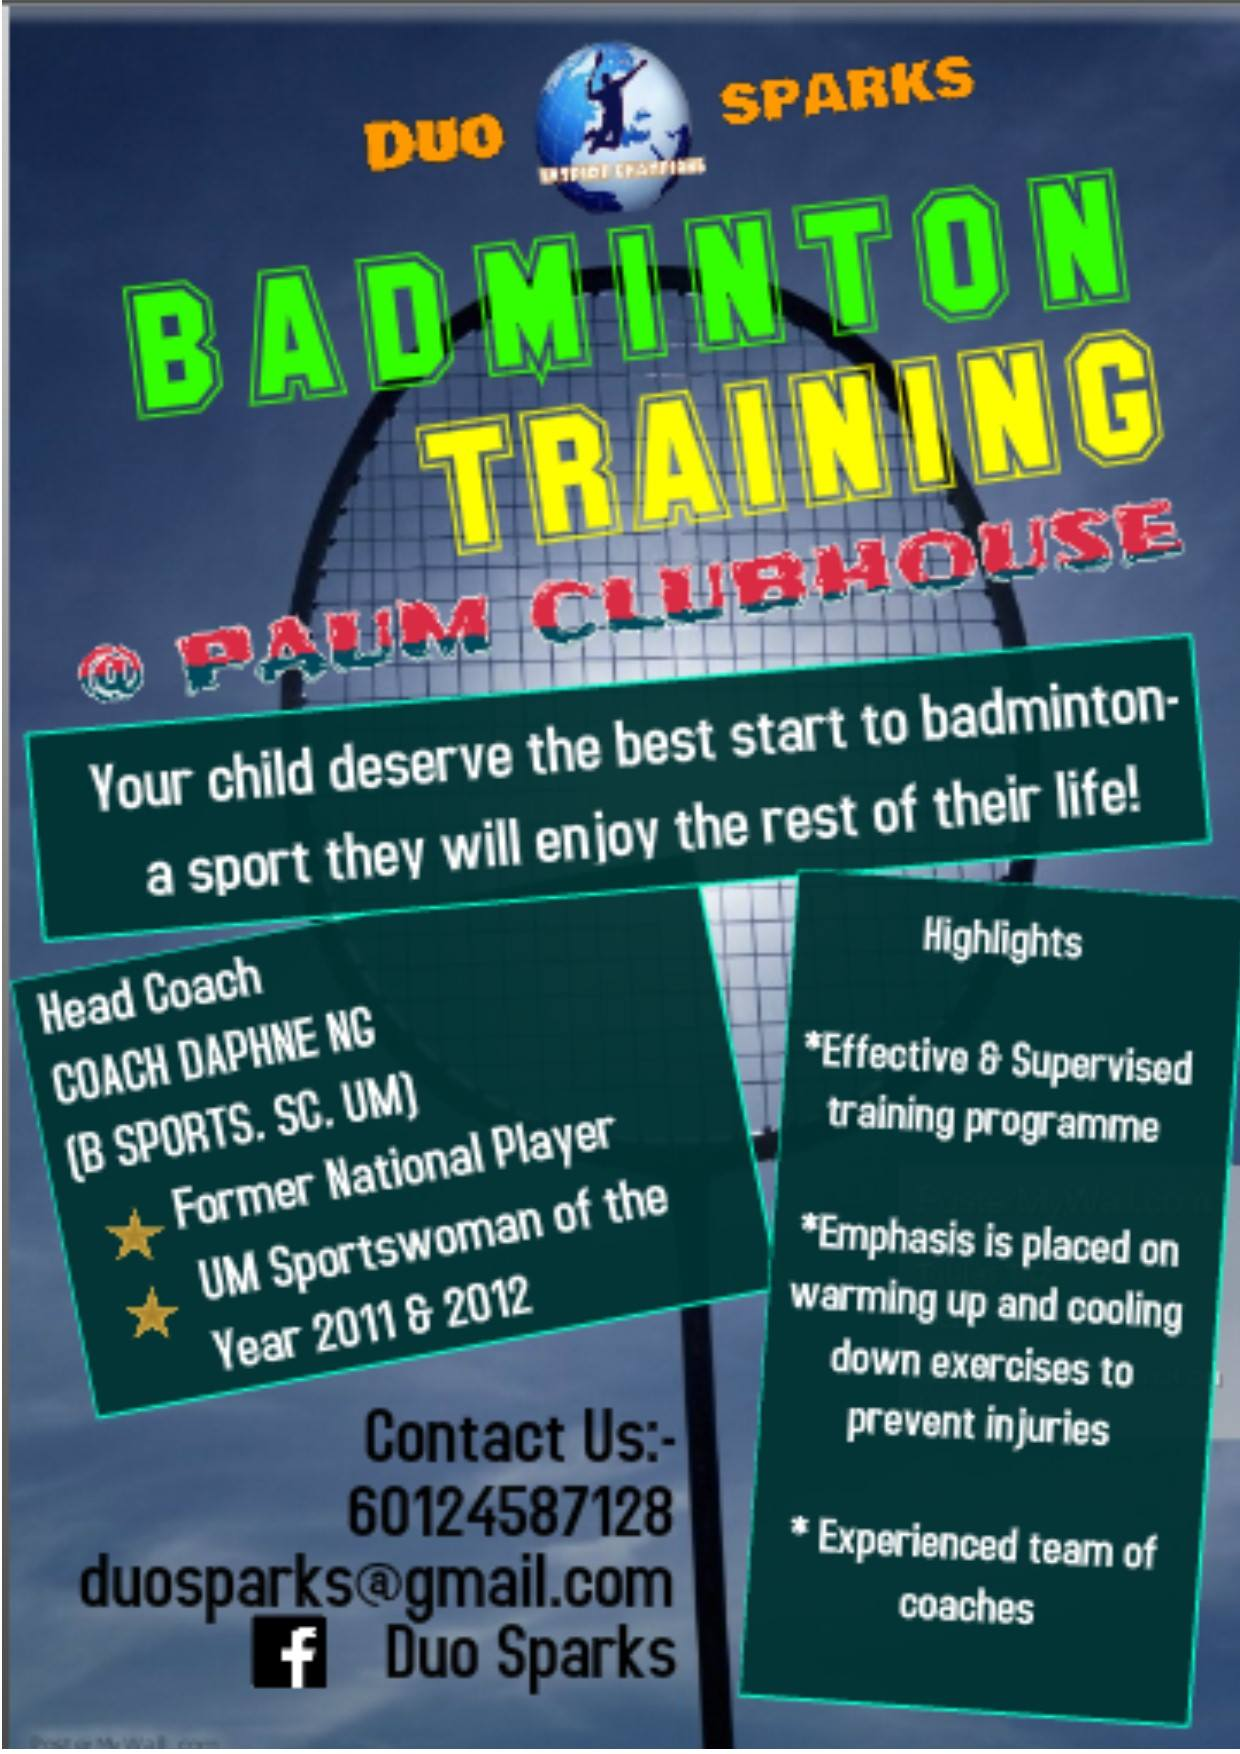 Badminton Training by Duo Sparks